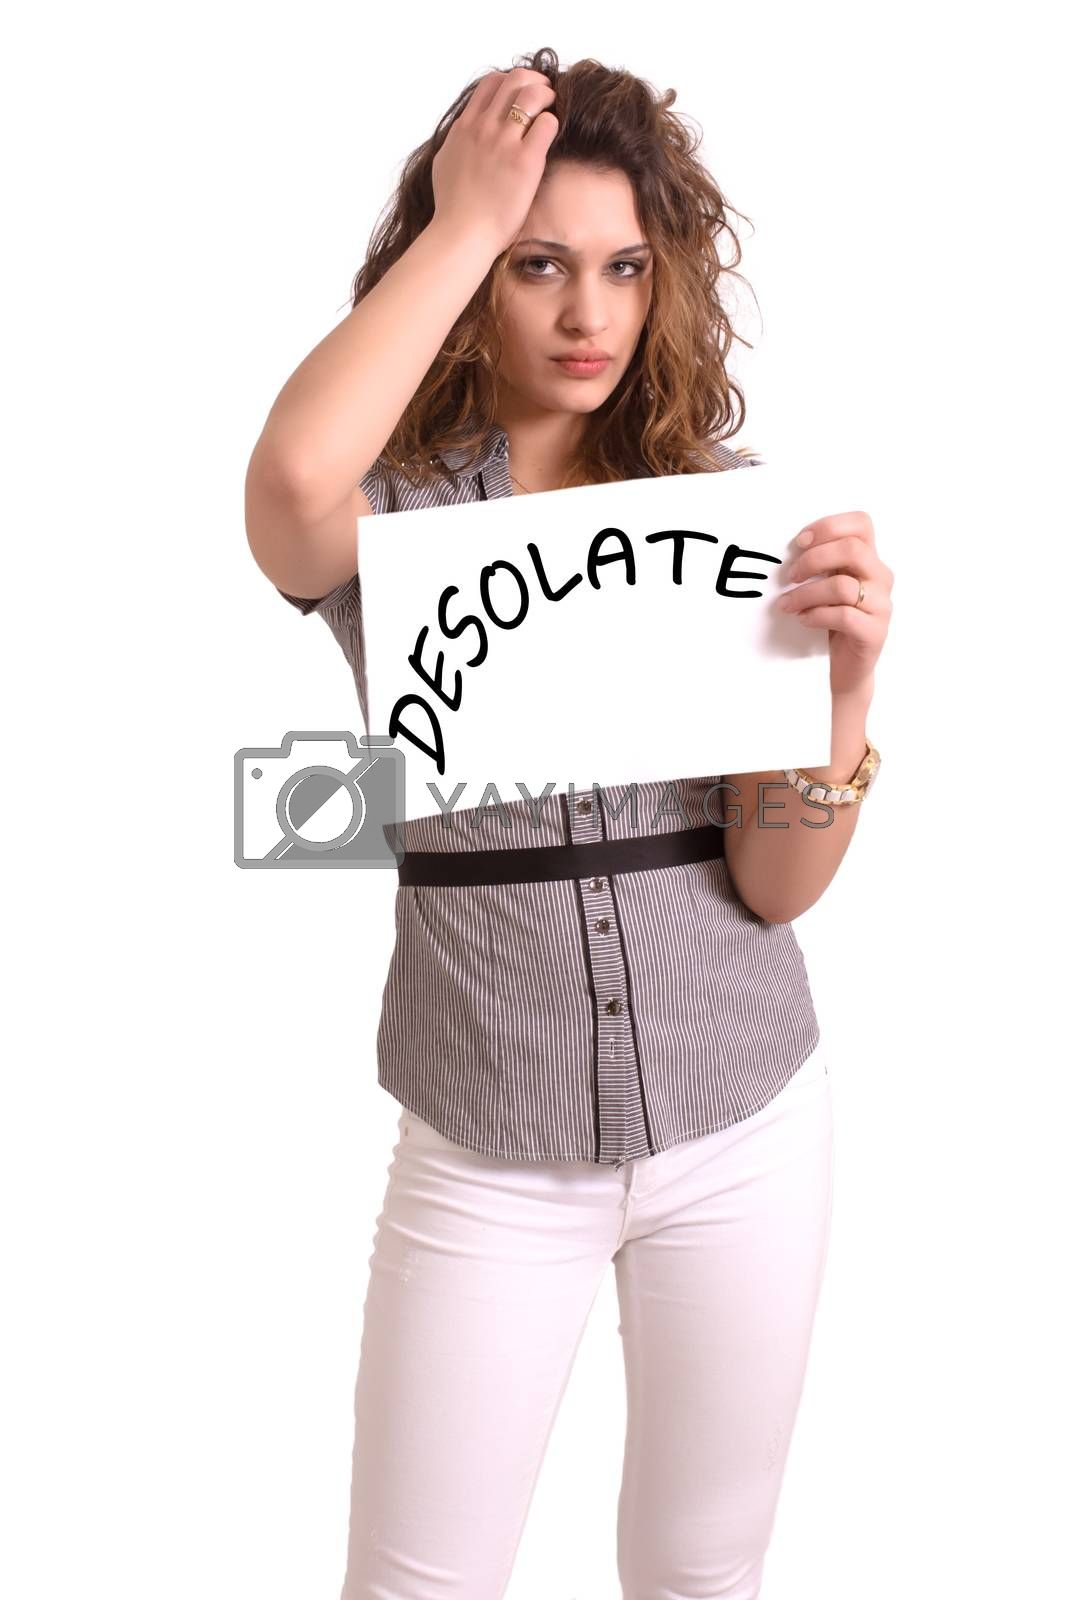 Royalty free image of uncomfortable woman holding paper with Desolate text by vepar5